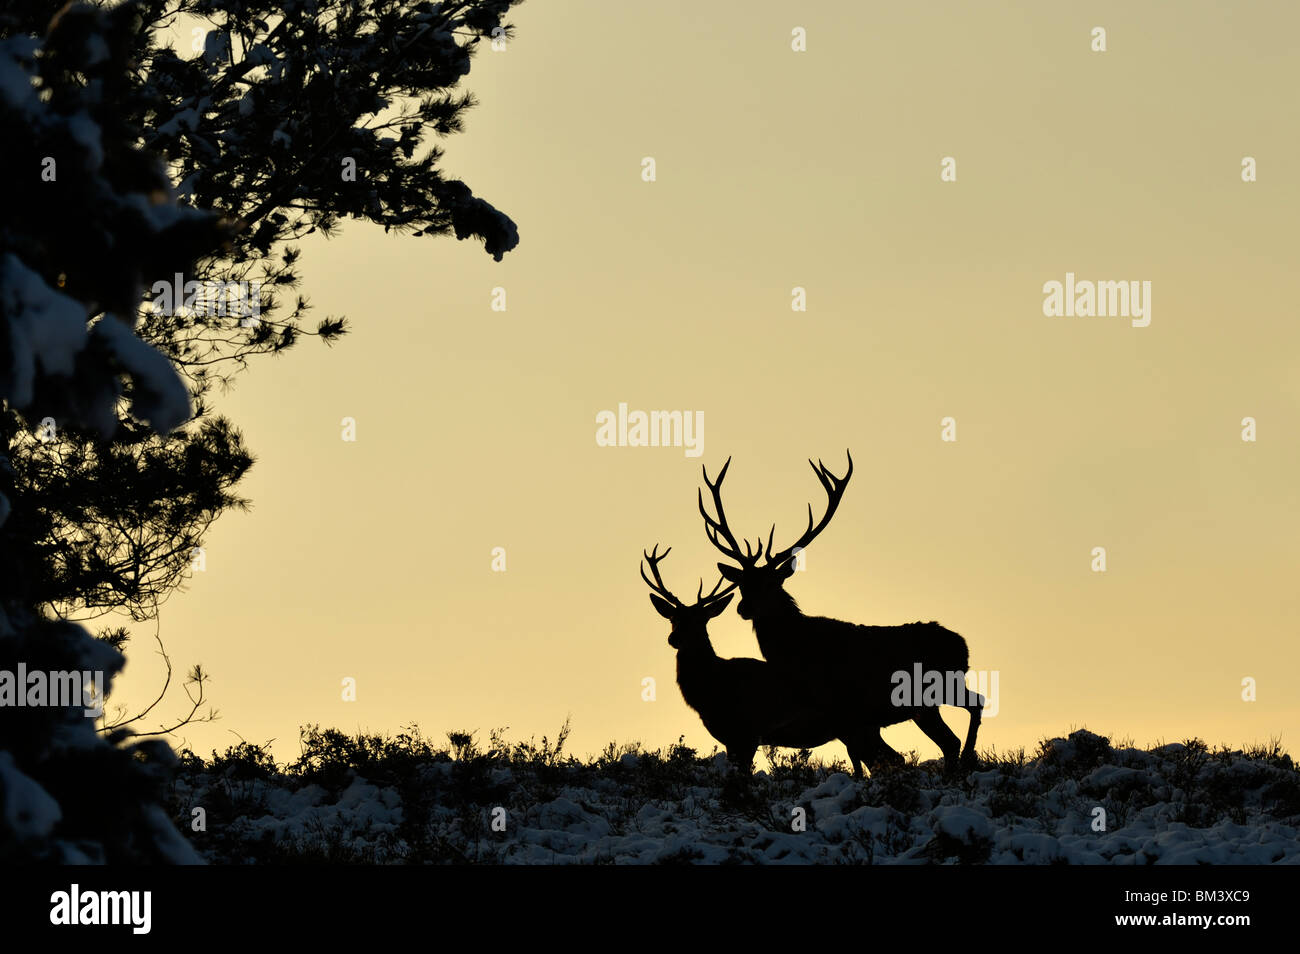 Red Deer (Cervus elaphus). Two stags silhouetted at dusk, Netherlands. - Stock Image